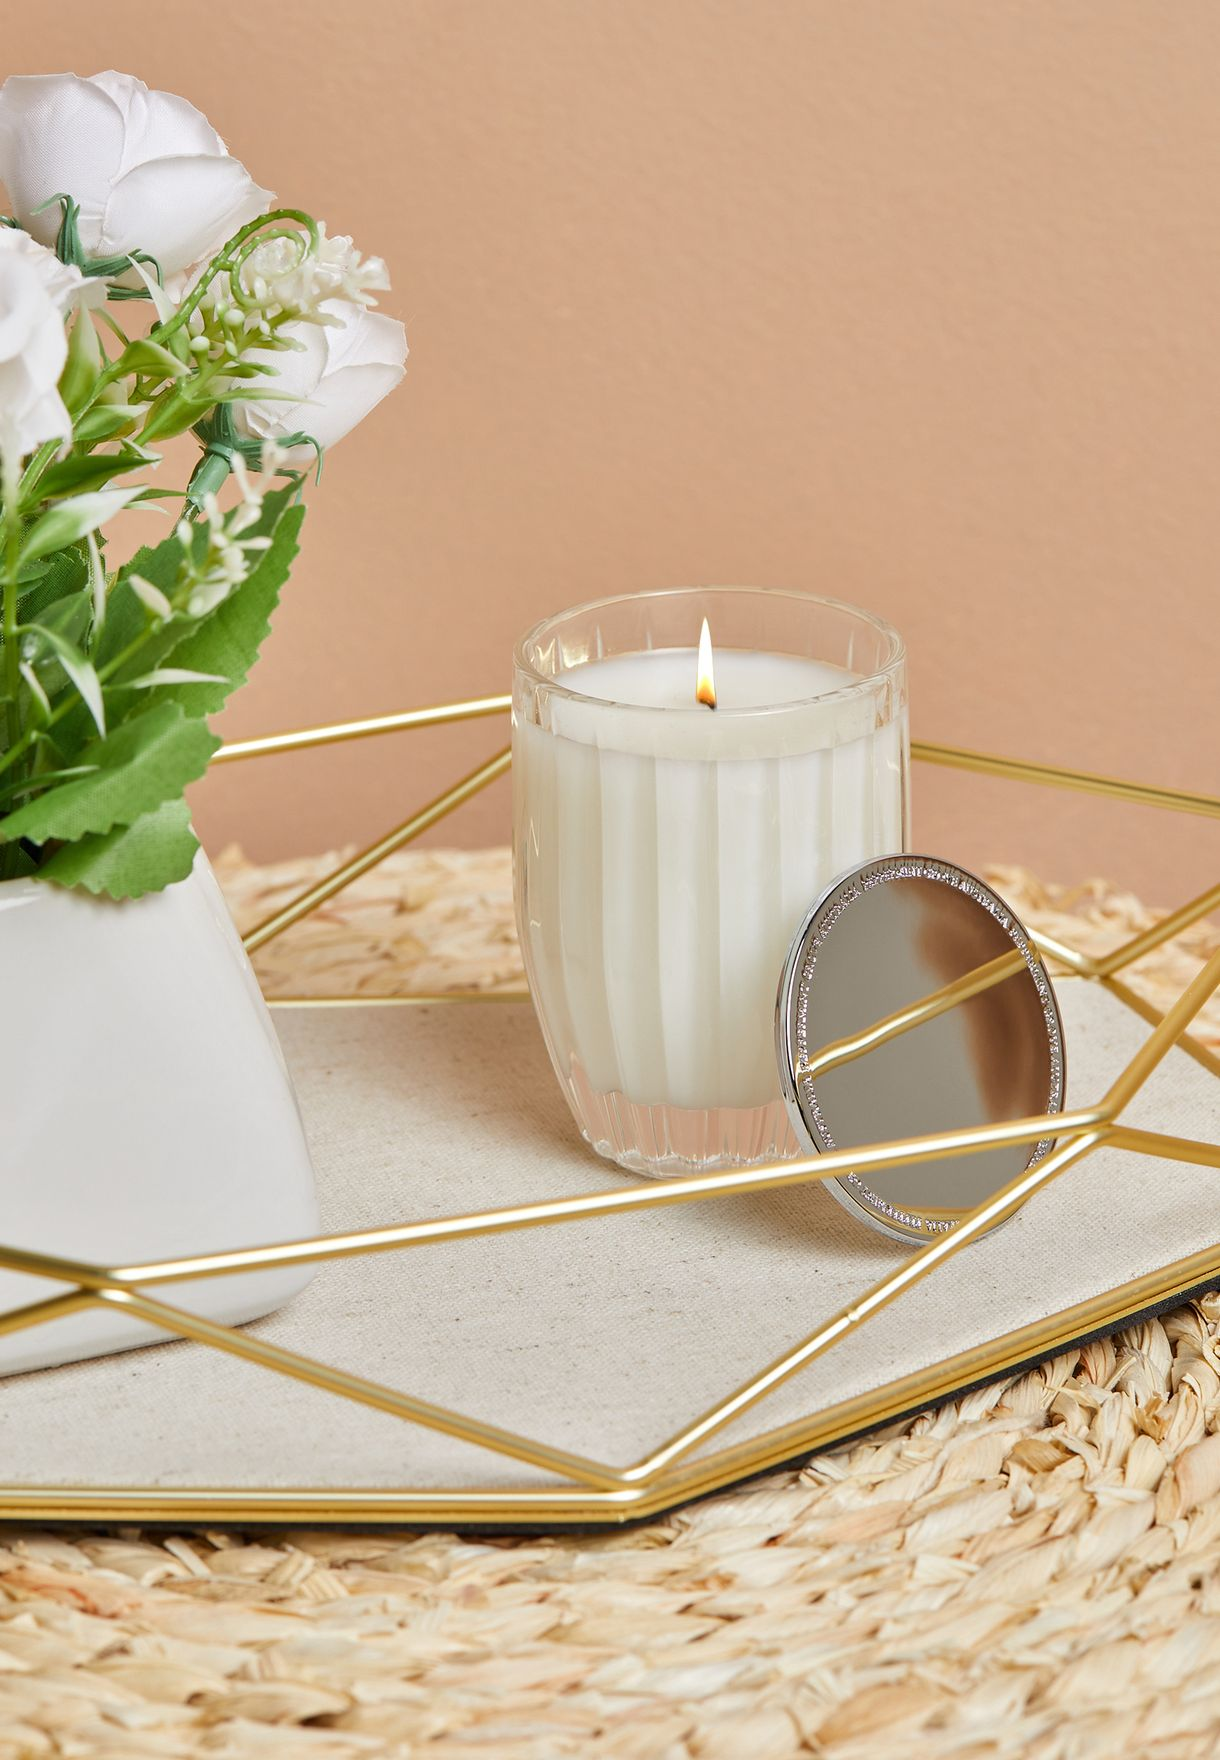 Lily & Lotus Flower Candle 60g